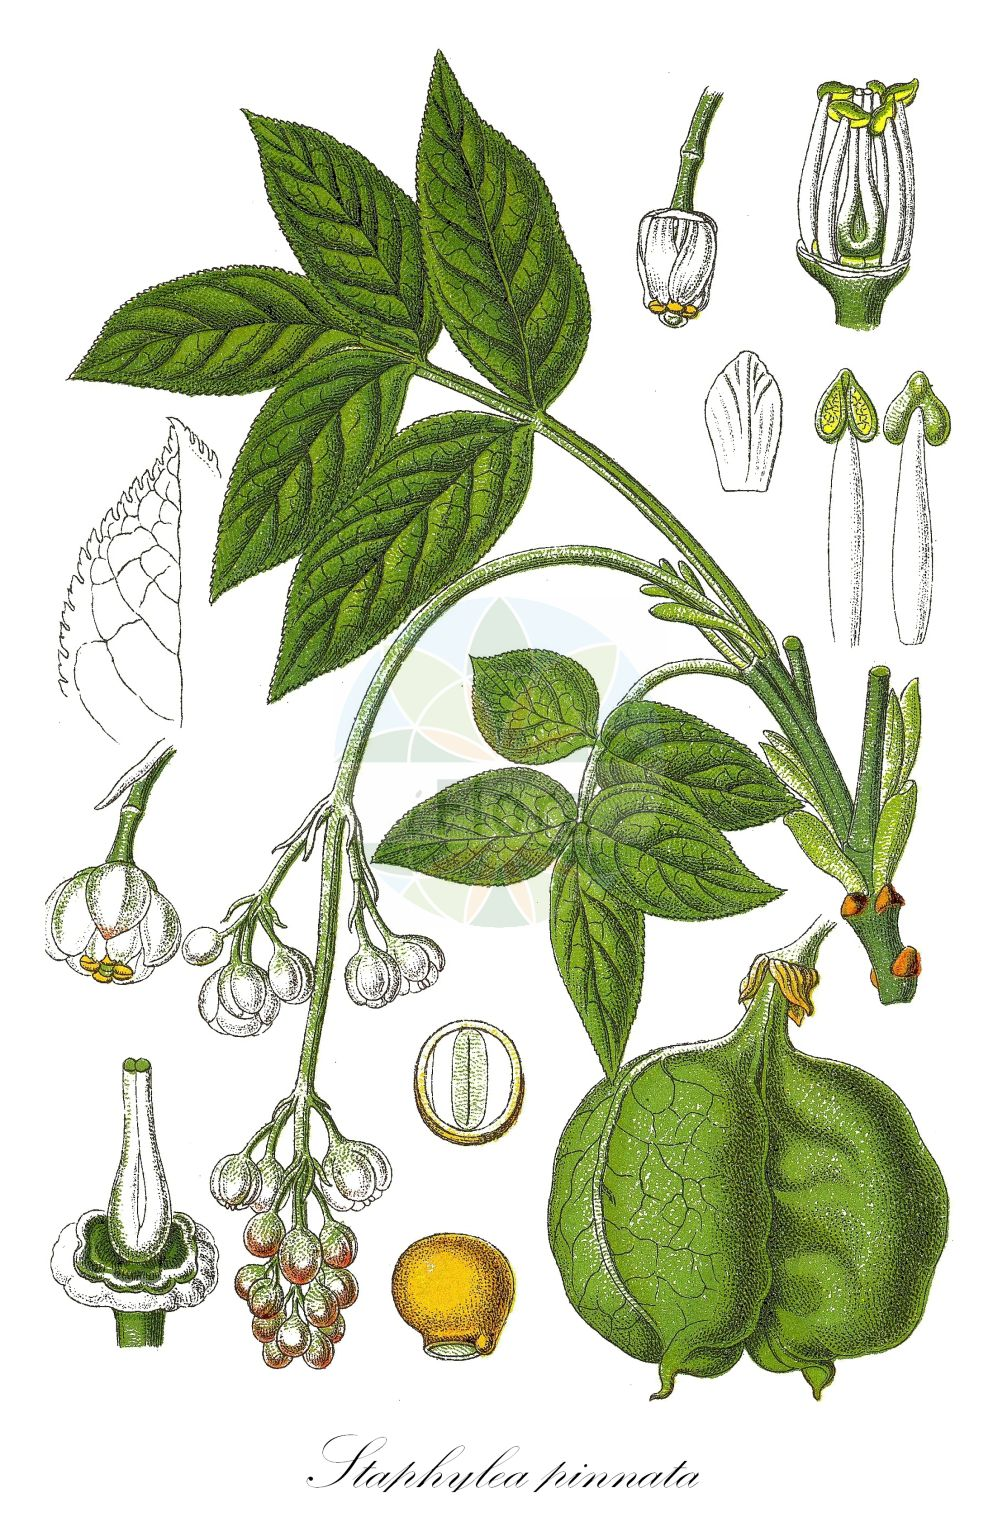 Historische Abbildung von Staphylea pinnata (Gewoehnliche Pimpernuss - Bladdernut). Das Bild zeigt Blatt, Bluete, Frucht und Same. ---- Historical Drawing of Staphylea pinnata (Gewoehnliche Pimpernuss - Bladdernut).The image is showing leaf, flower, fruit and seed.(Staphylea pinnata,Gewoehnliche Pimpernuss,Bladdernut,Paternosterbaum,Pimpernuss,European ,Staphylea,Pimpernuss,Bladdernut,Staphyleaceae,Pimpernussgewaechse,Bladdernut family,Blatt,Bluete,Frucht,Same,leaf,flower,fruit,seed,Sturm (1796f))